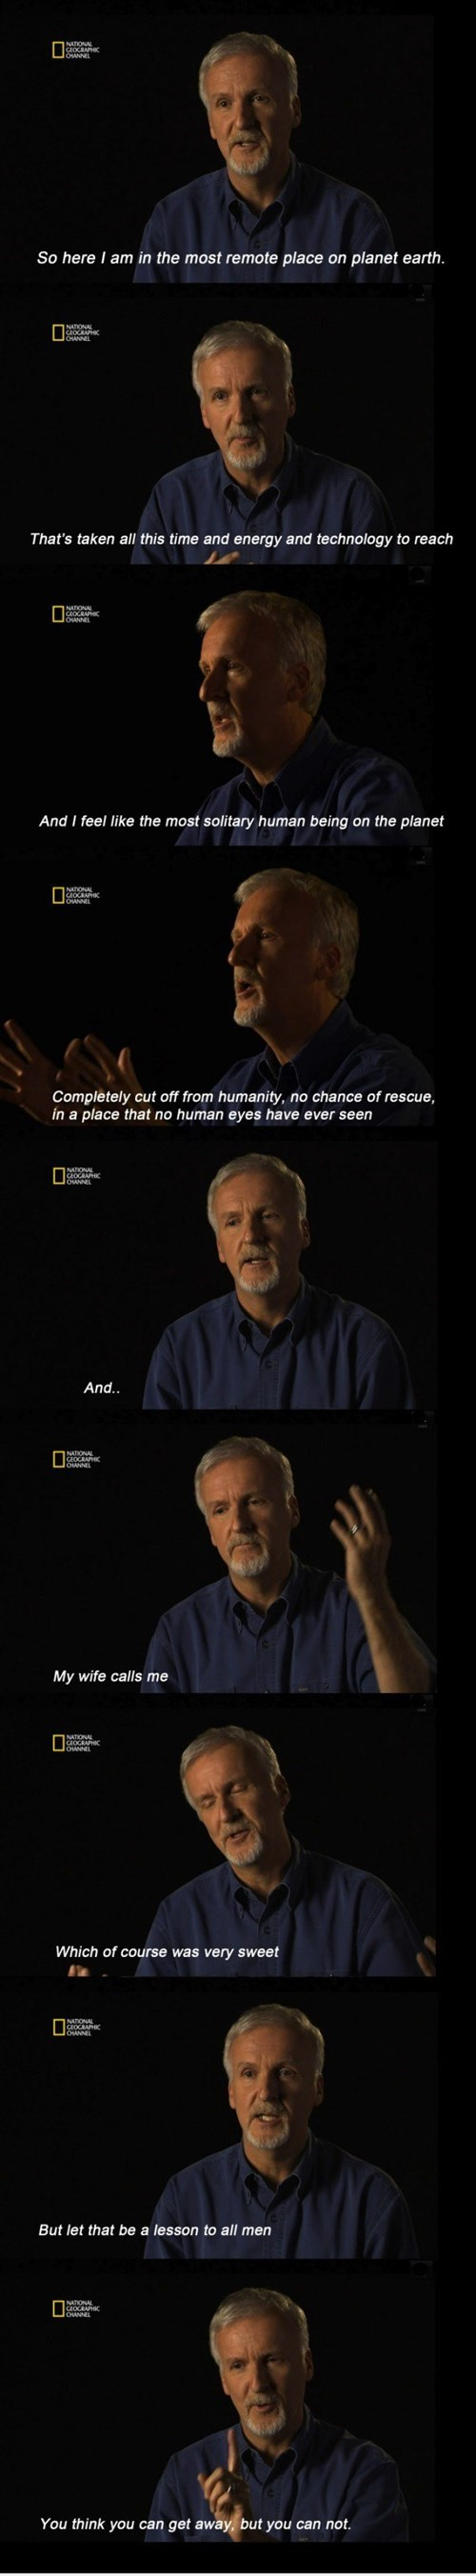 funny-dank-memes-james-cameron-gives-advice-to-men-everywhere